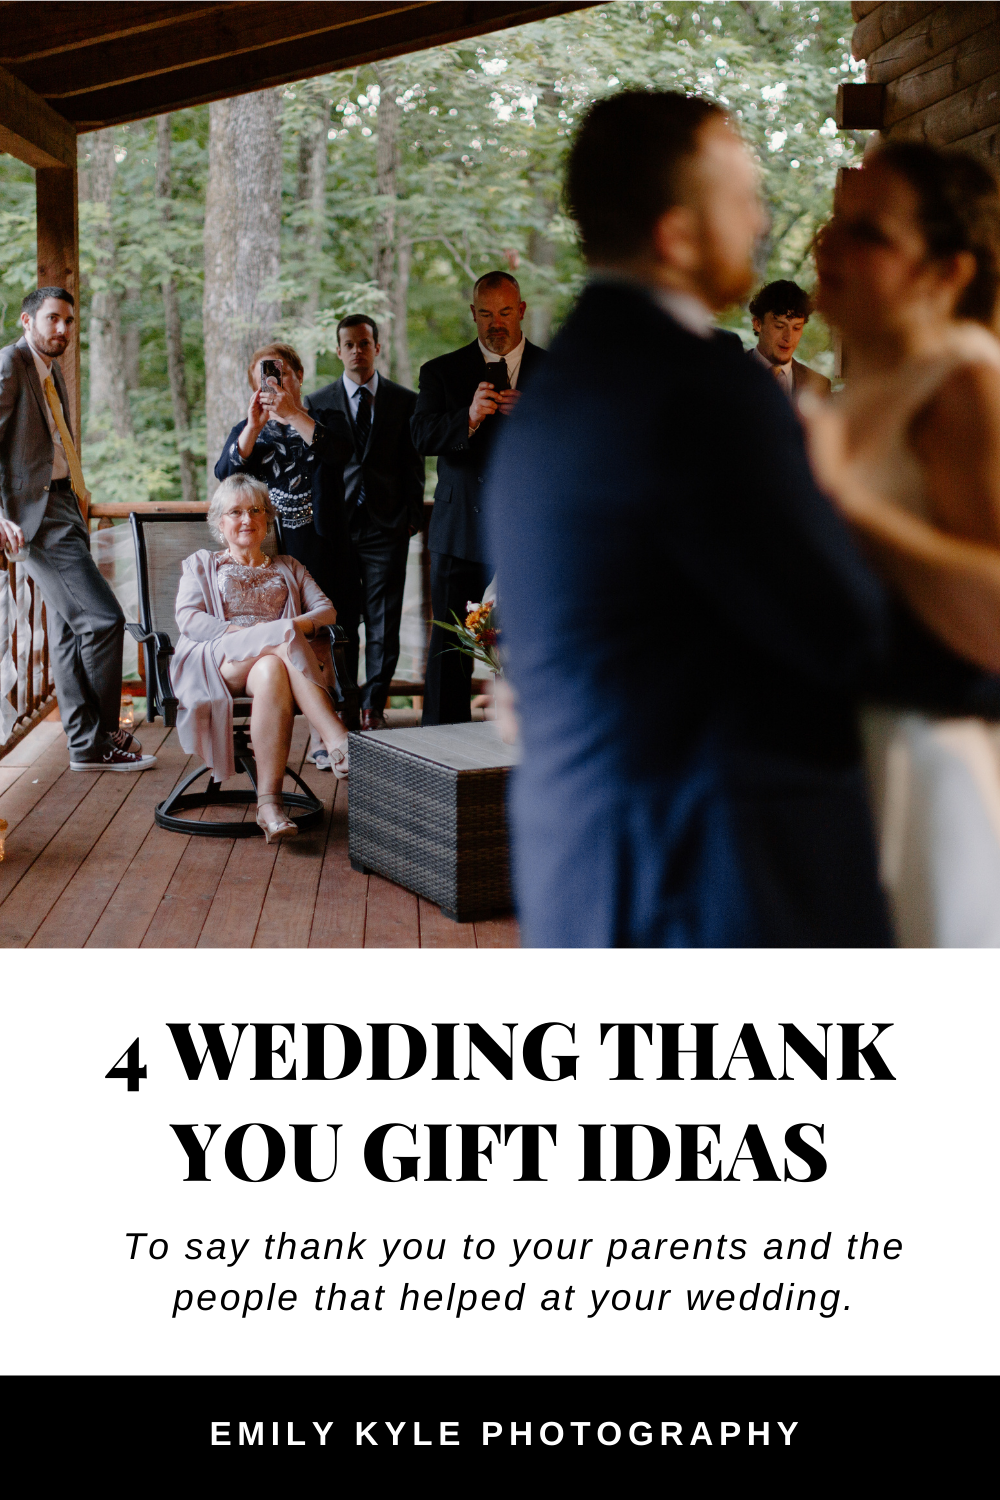 4 Wedding Thank You Gift Ideas For Your Parents Emily Kyle Photography Detroit Documentary Wedding Photographer